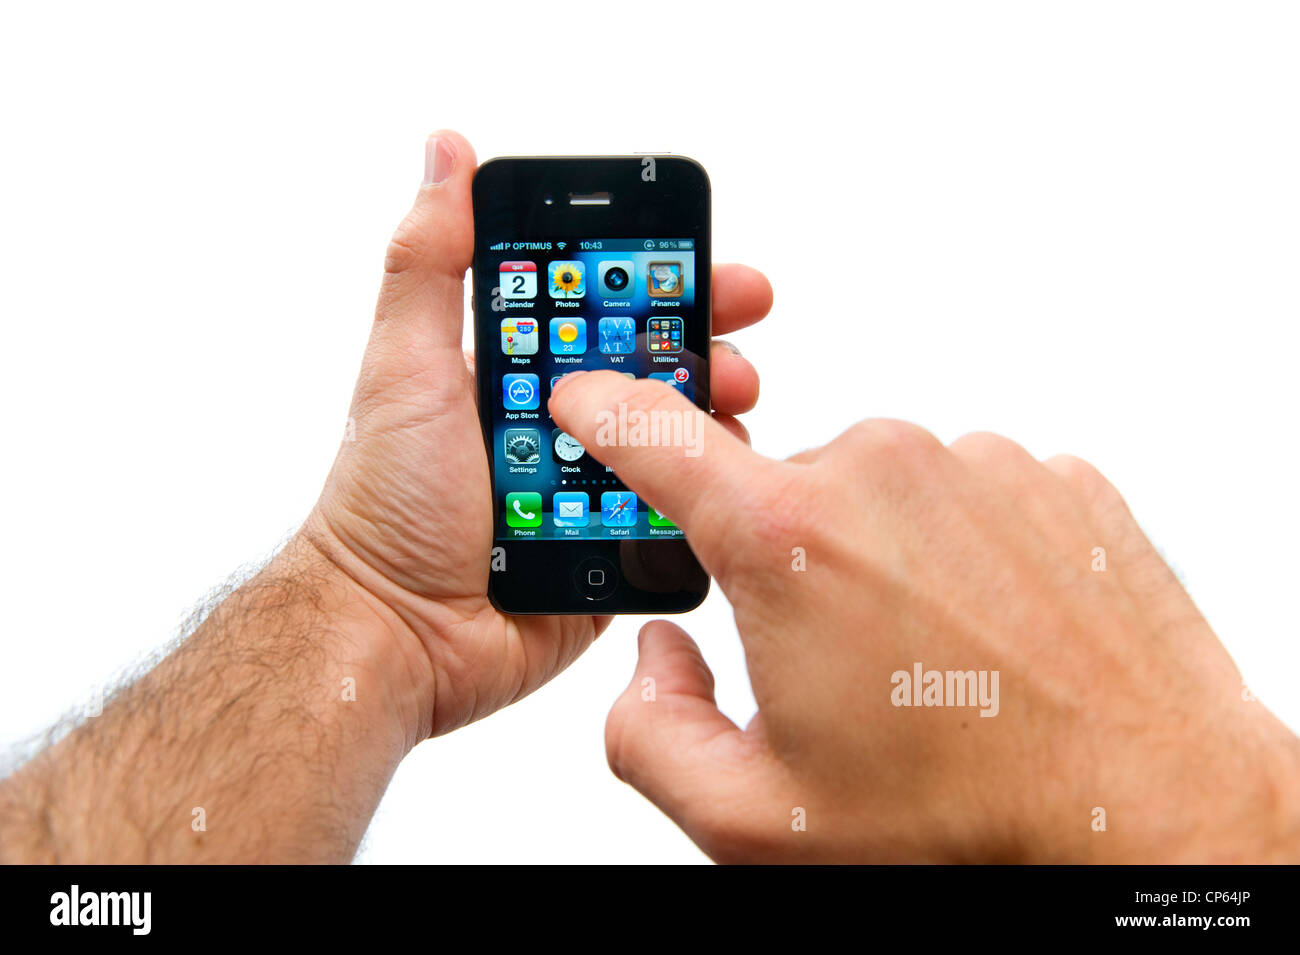 Hands holding and using an iPhone - Stock Image